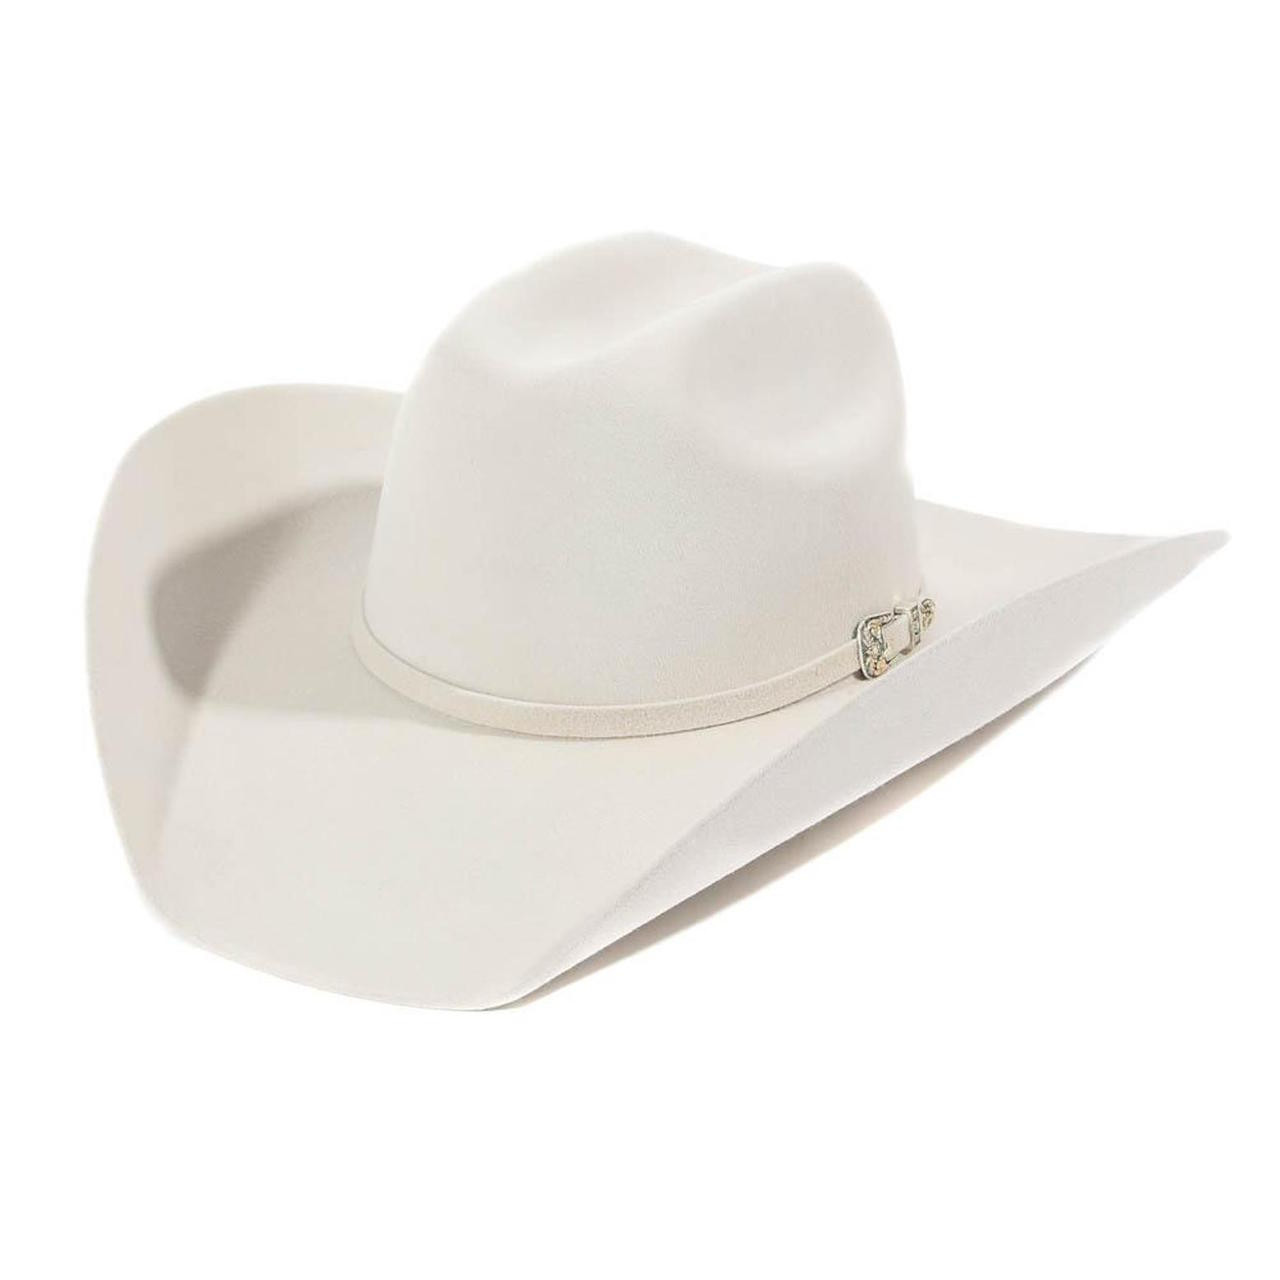 Authentic fur felt Cowboy Hats - Available at Space Cowboy ee4957ceb71